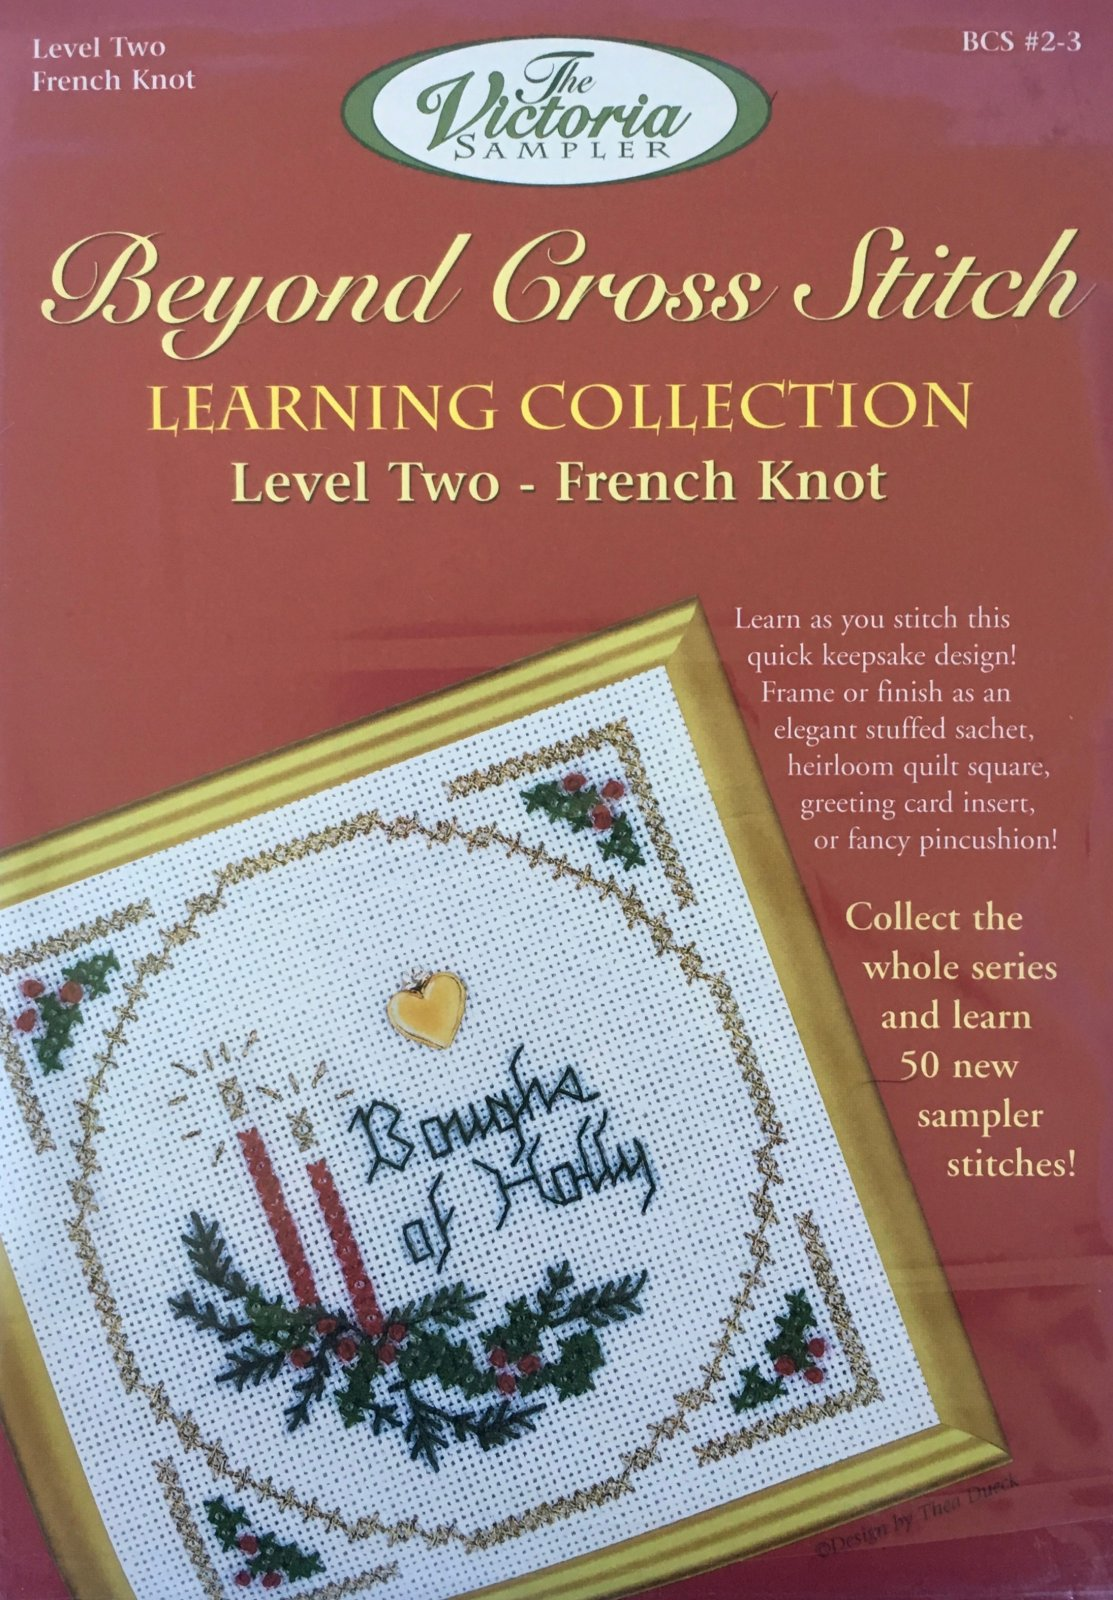 The Victoria Sampler: Boughs Of Holly Level 2 - #3 Kit; French Knot Stitch